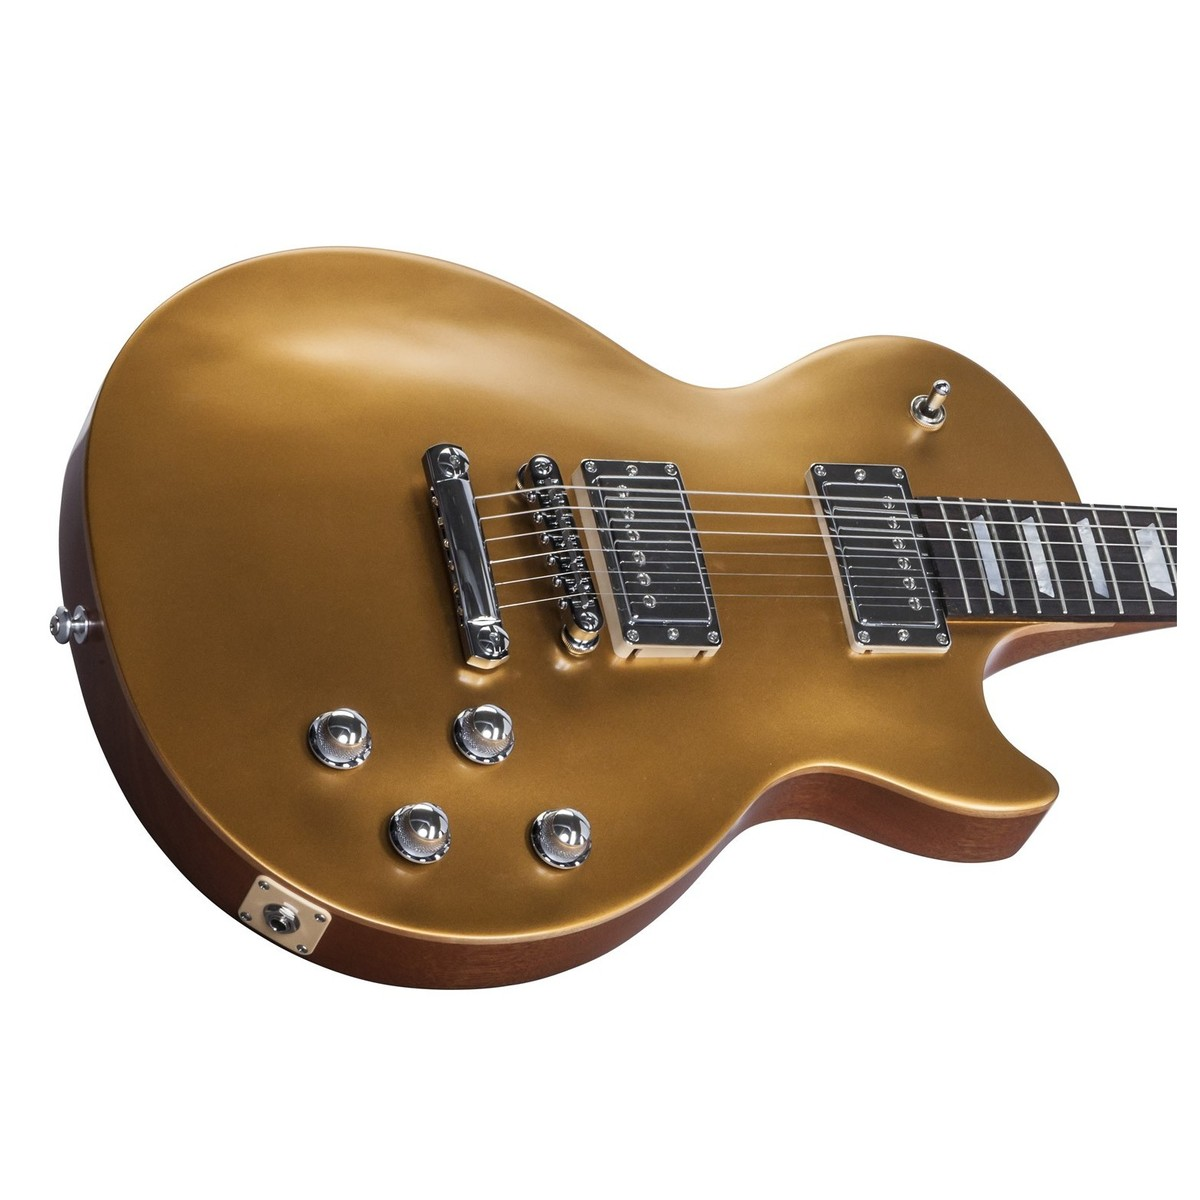 gibson les paul tribute hp electric guitar satin gold top 2017 at gear4music. Black Bedroom Furniture Sets. Home Design Ideas